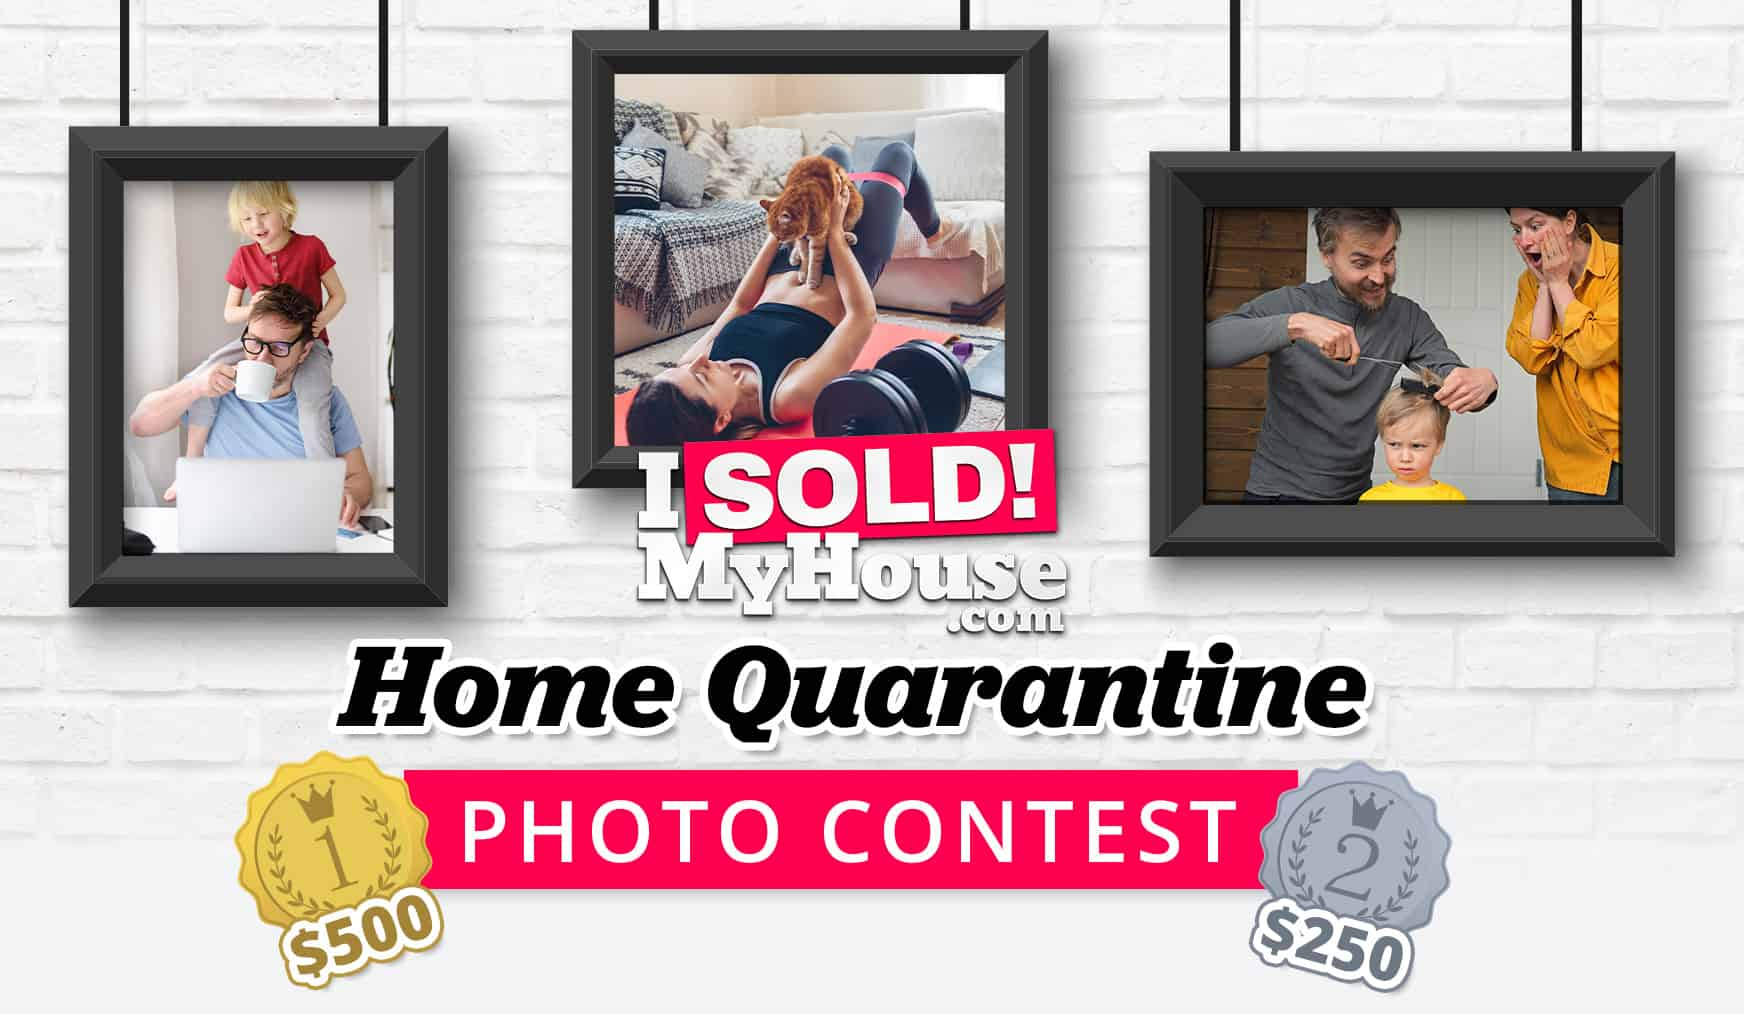 picture of home quarantine photo contest